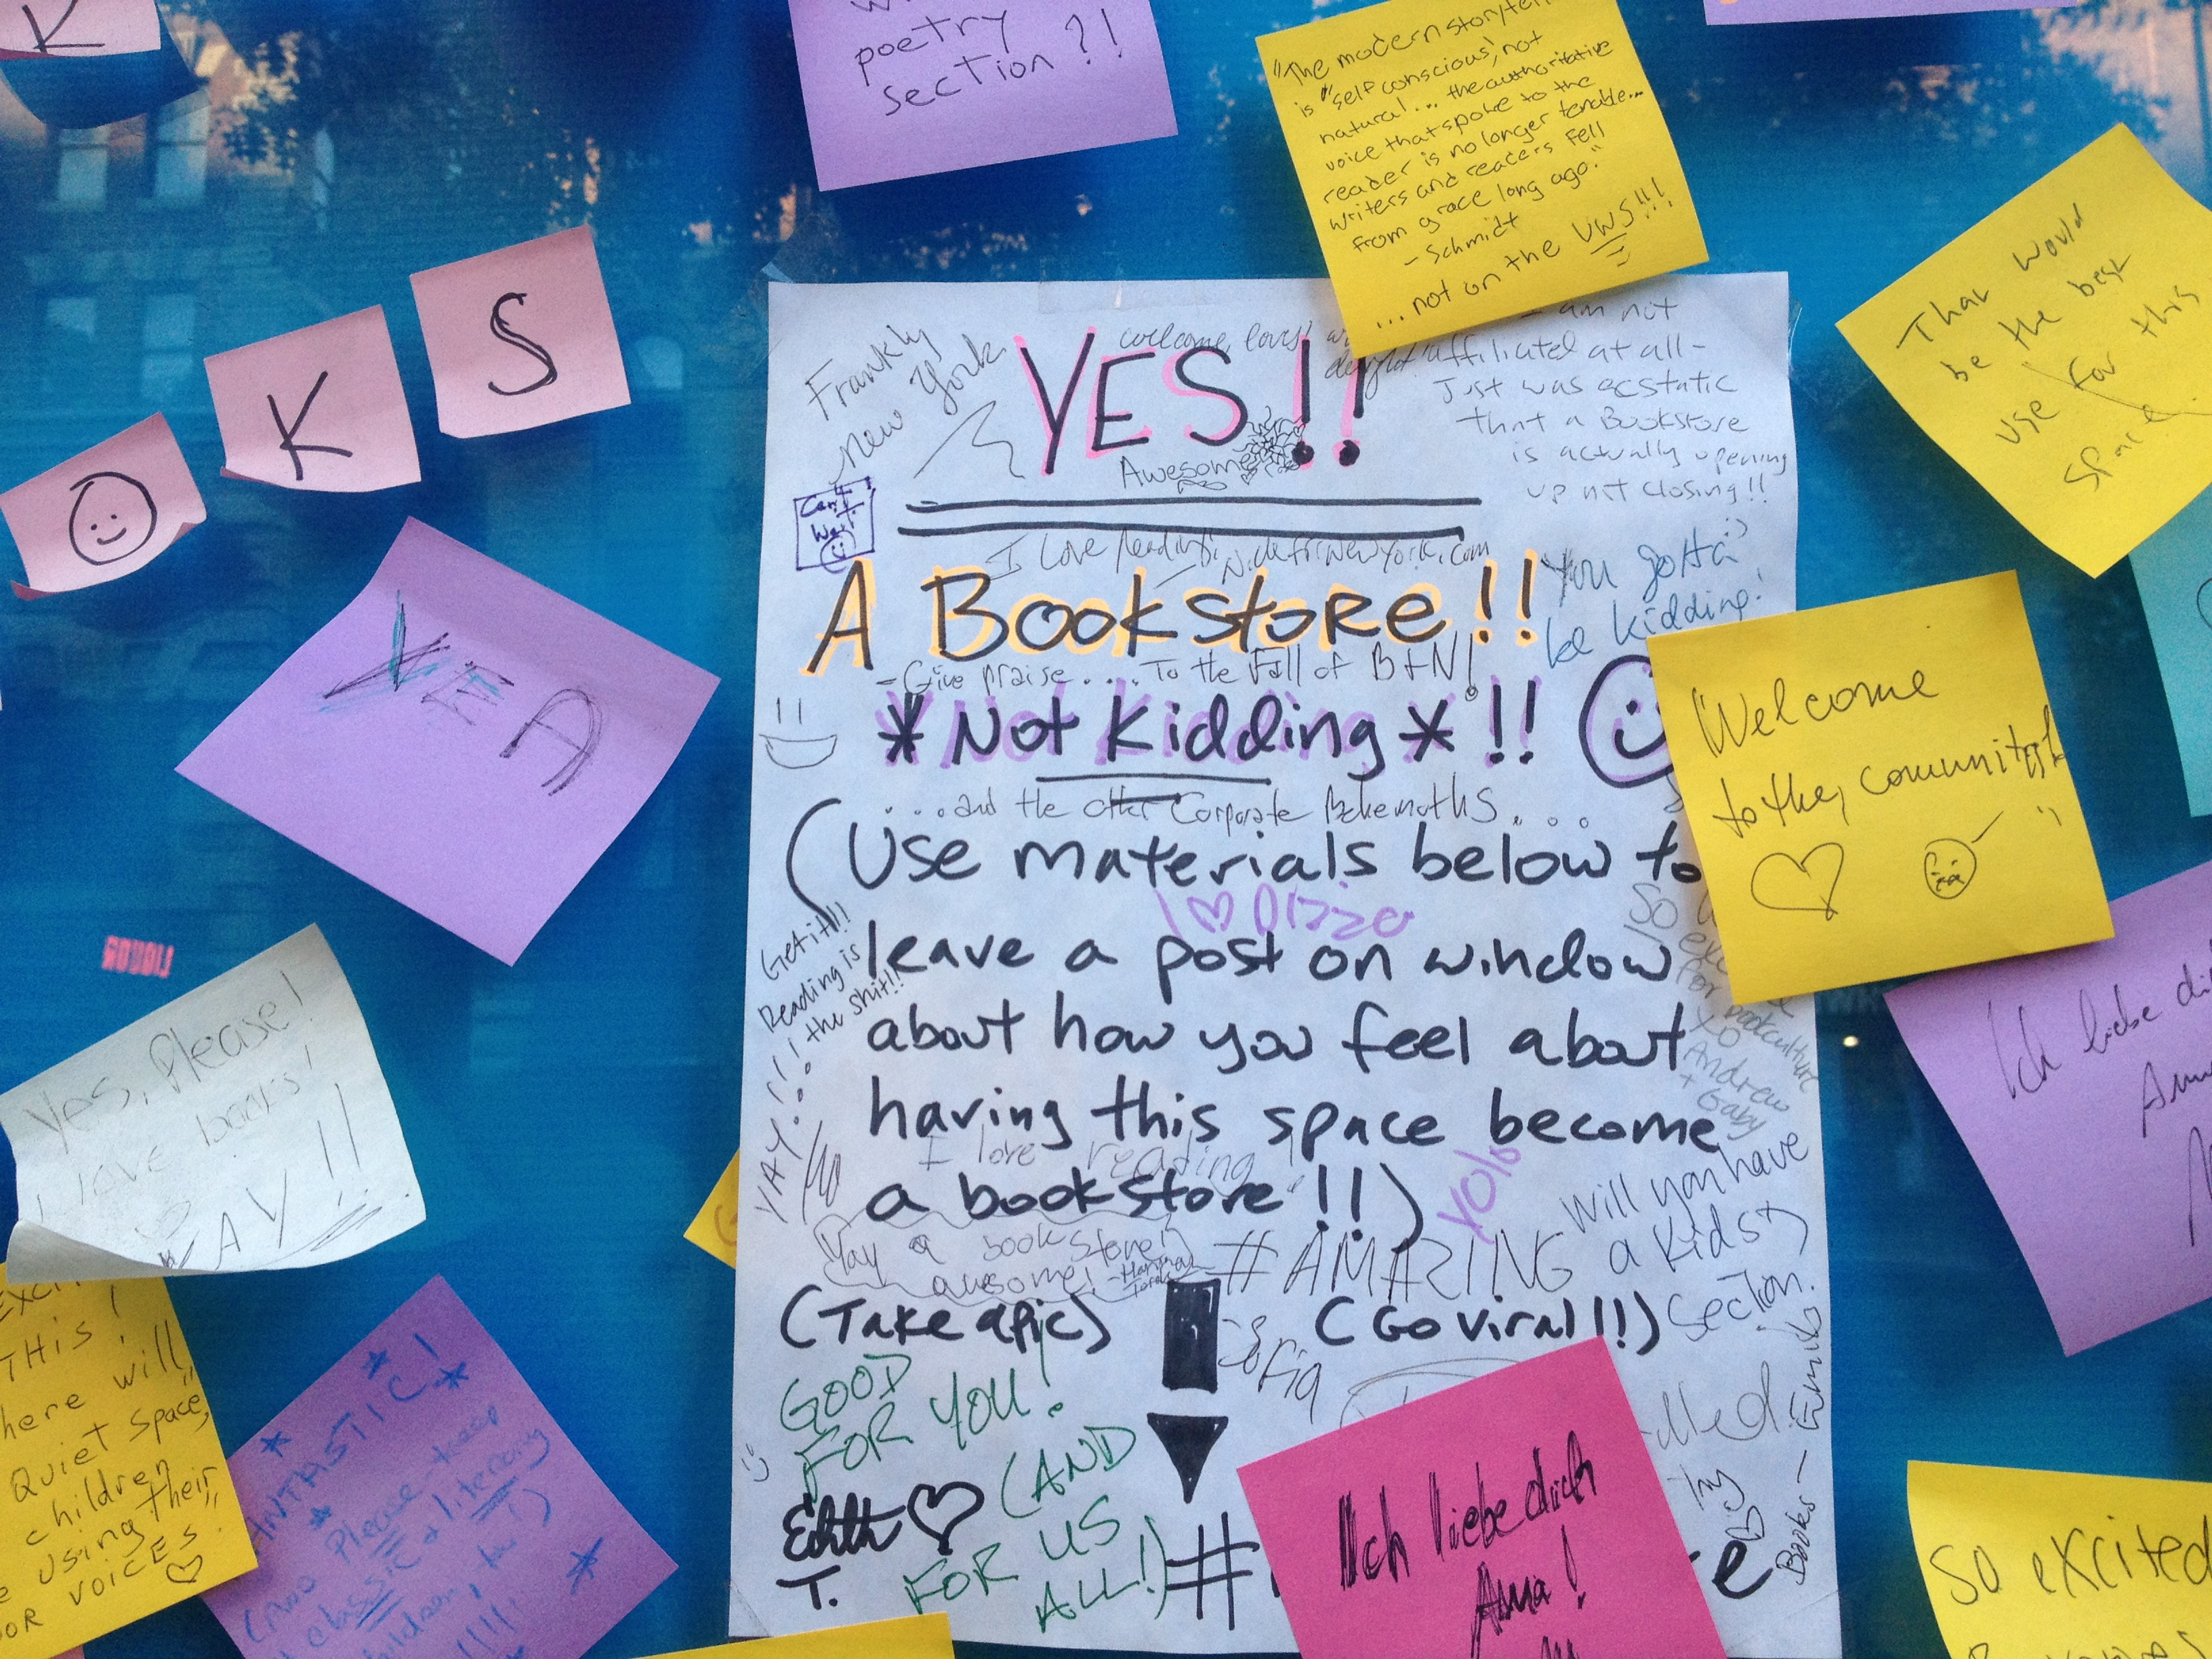 Book Culture invited neighbors to express their support for the new store. A sampling on the front window is shown.